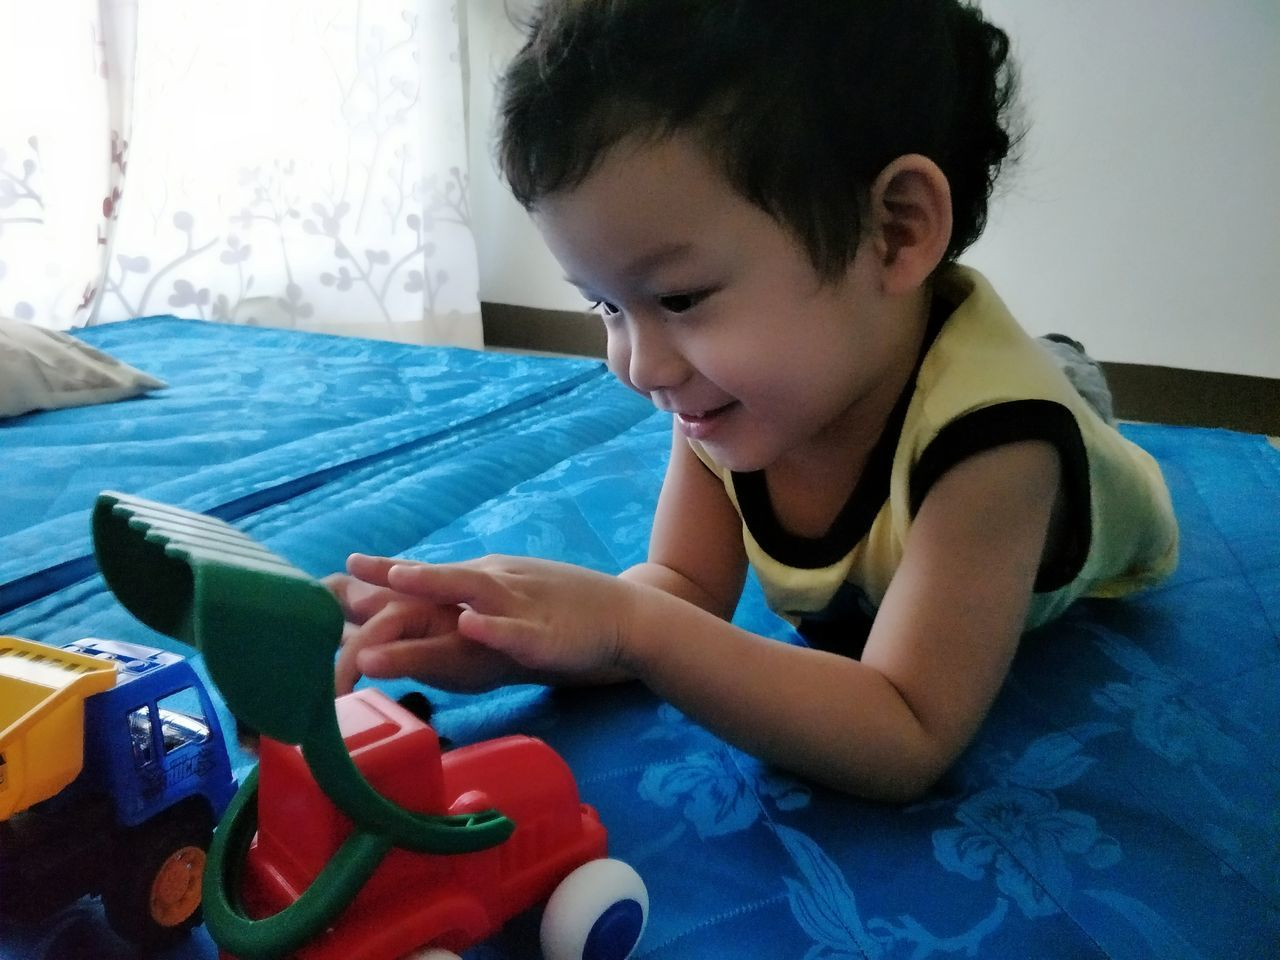 Smiling Boy Playing With Toy At Home